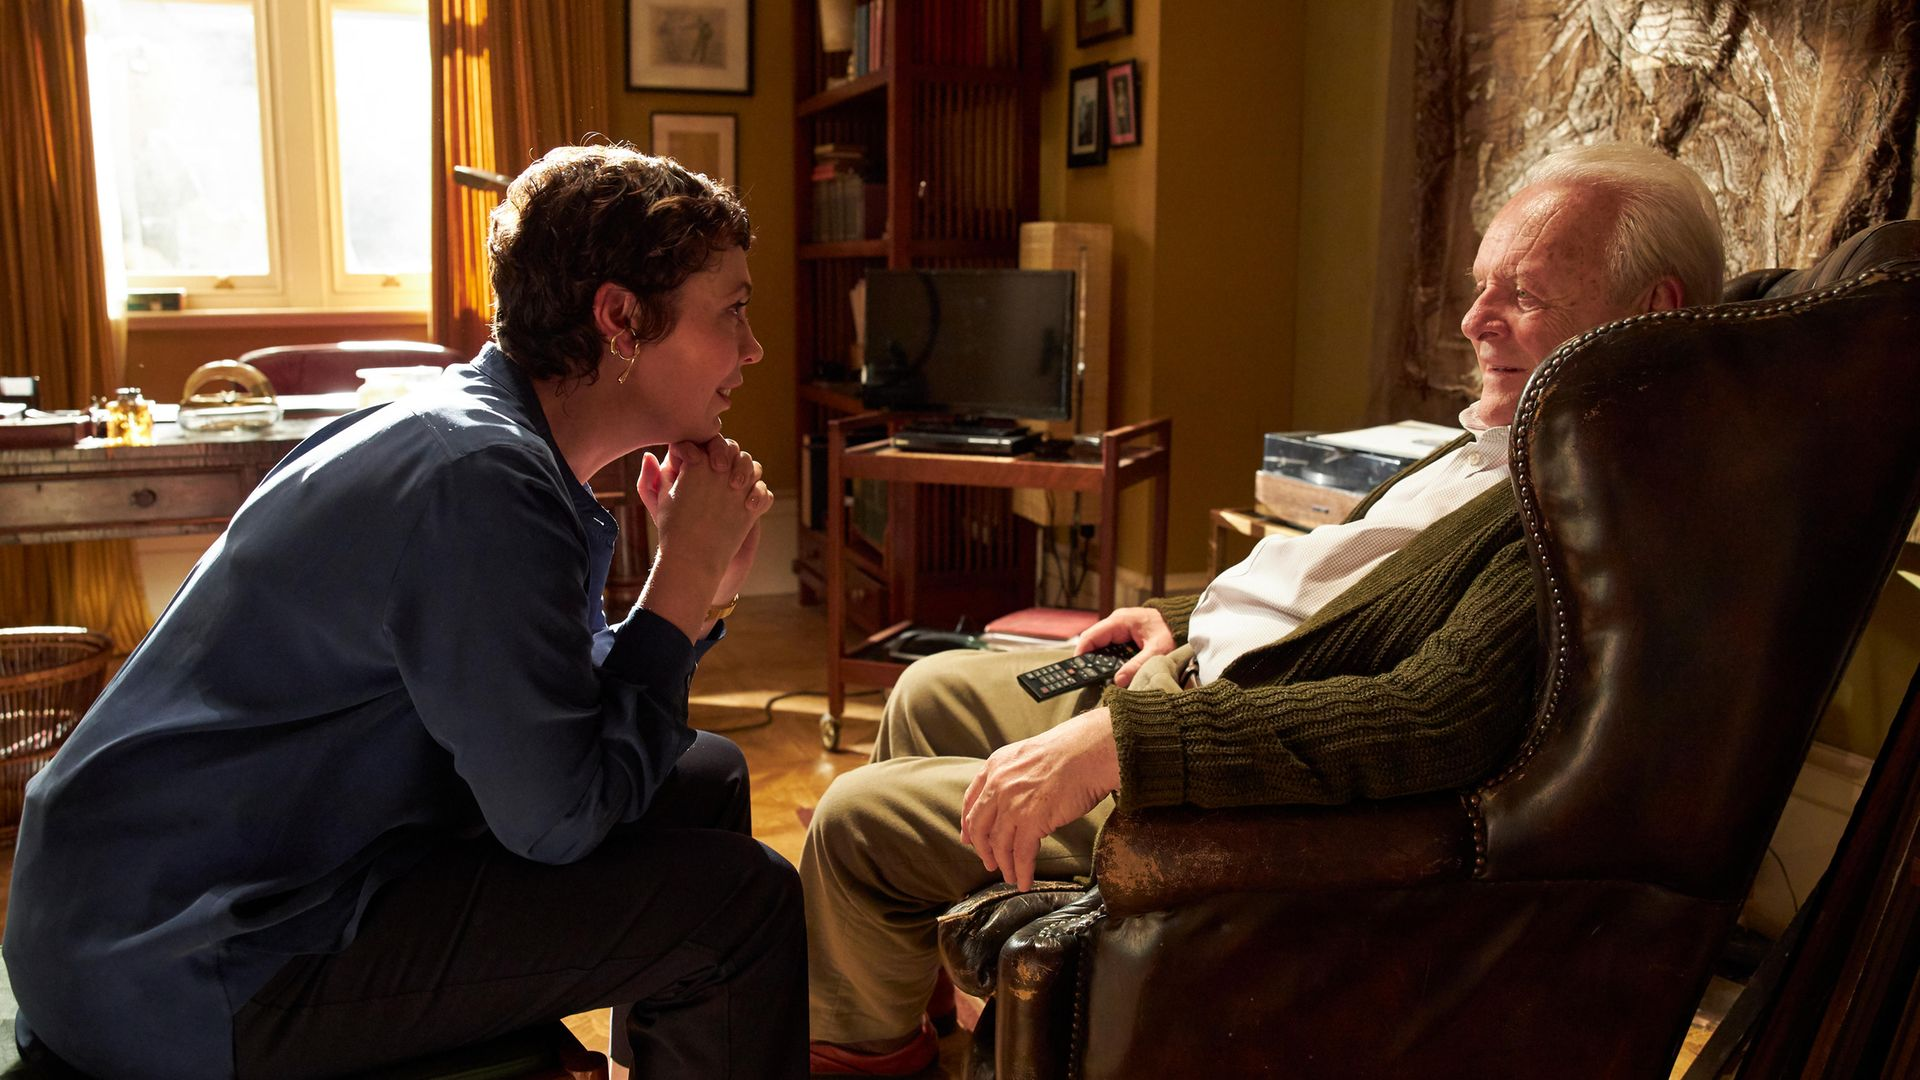 Olivia Colman and Anthony Hopkins in The Father - Credit: Lionsgate Entertainment/Sean Gleason